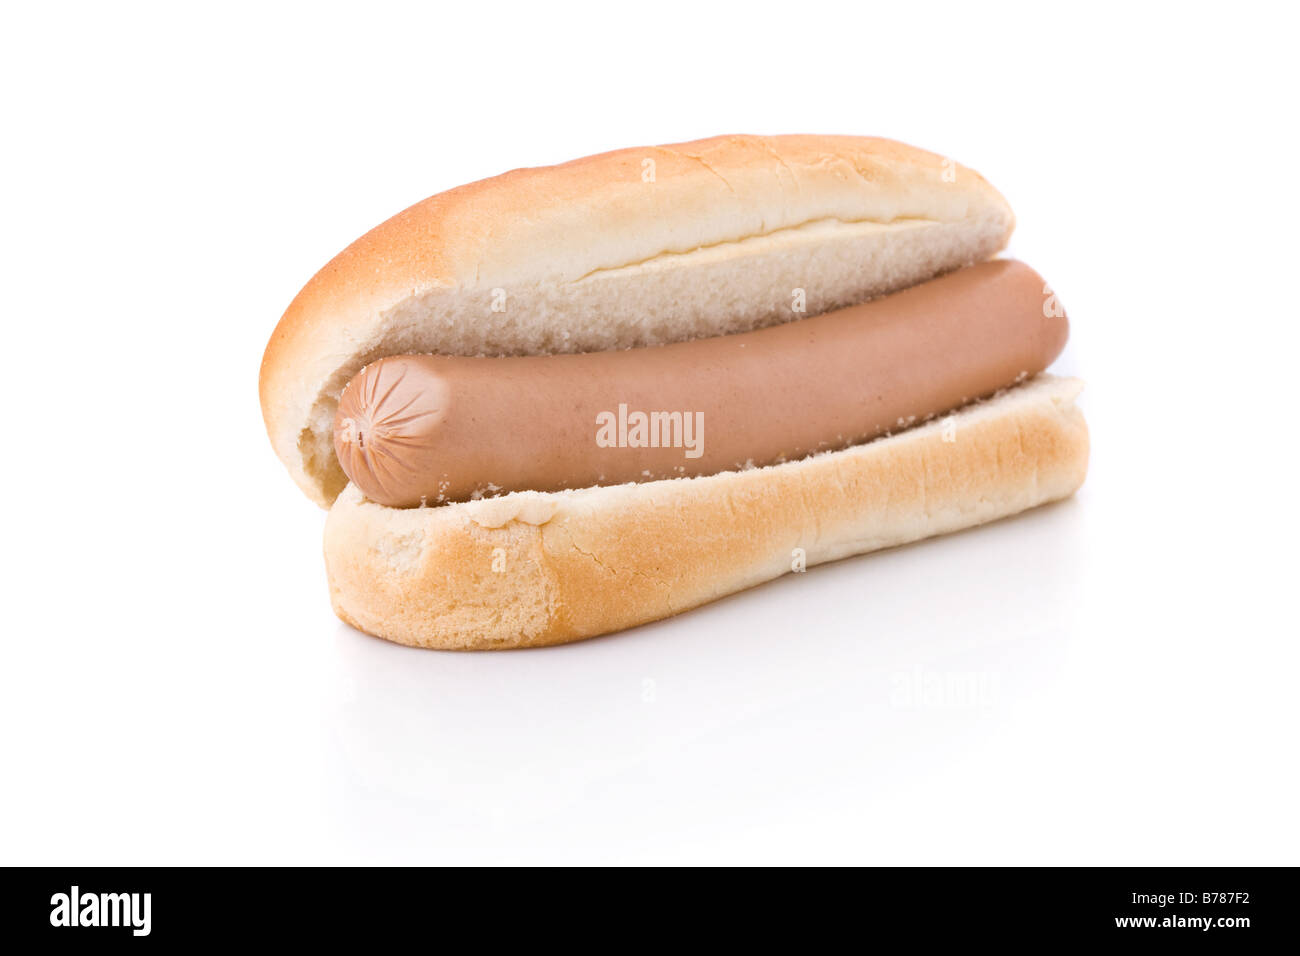 Simple Hotdog isolated on a white background - Stock Image